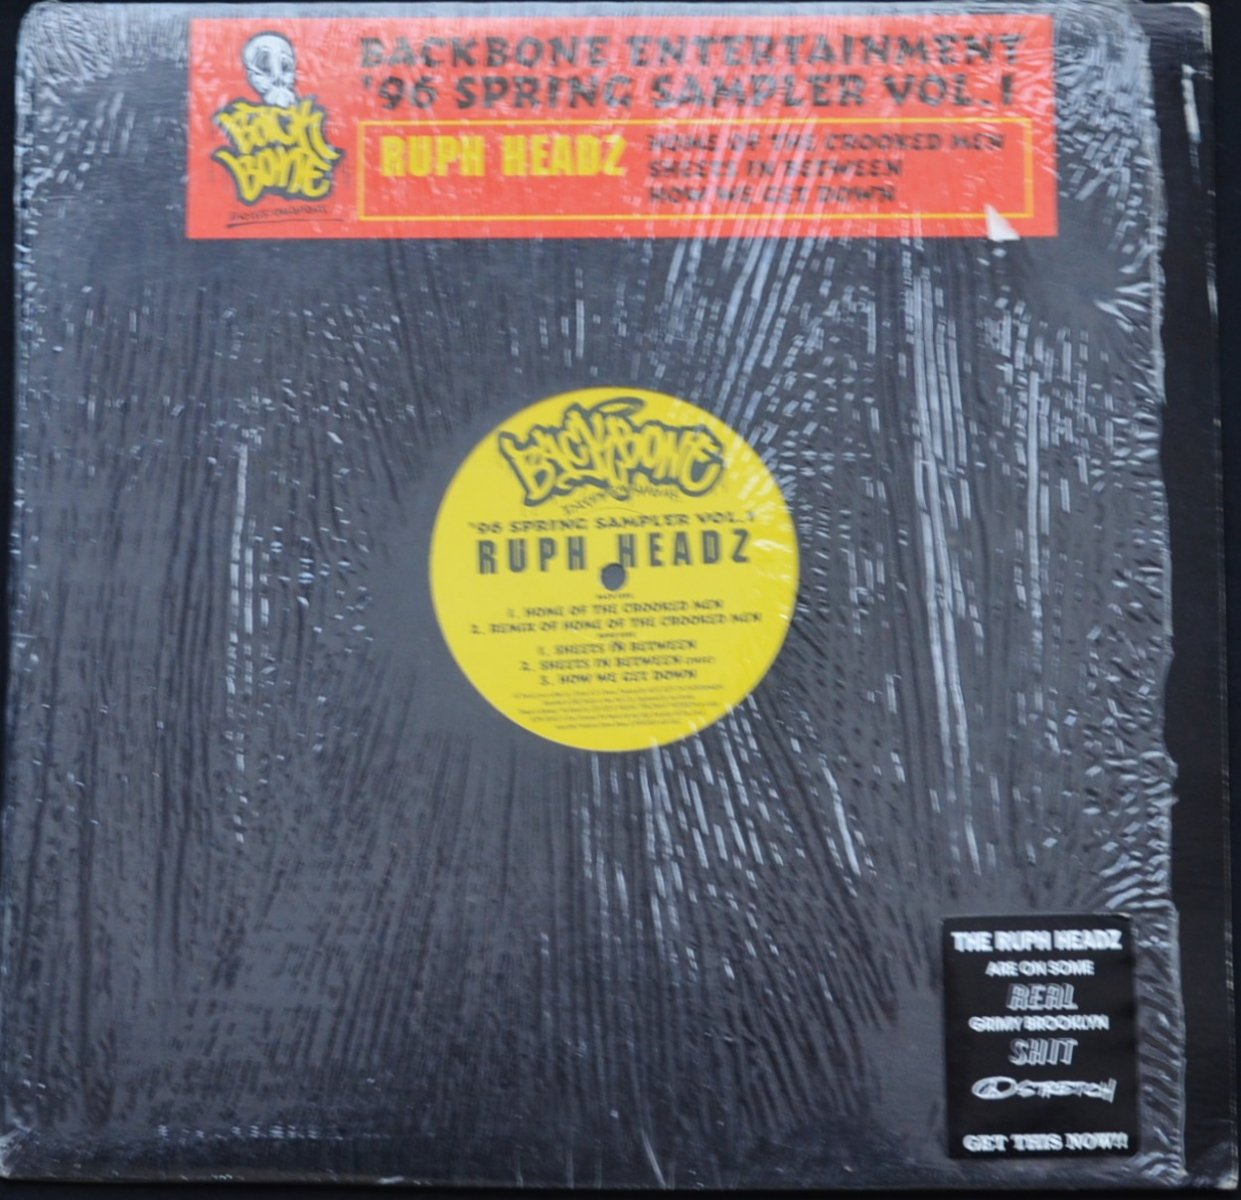 RUPH HEADZ ‎/ HOME OF THE CROOKED MEN (BACKBONE ENTERTAINMENT '96 SPRING SAMPLER VOL.1) (12